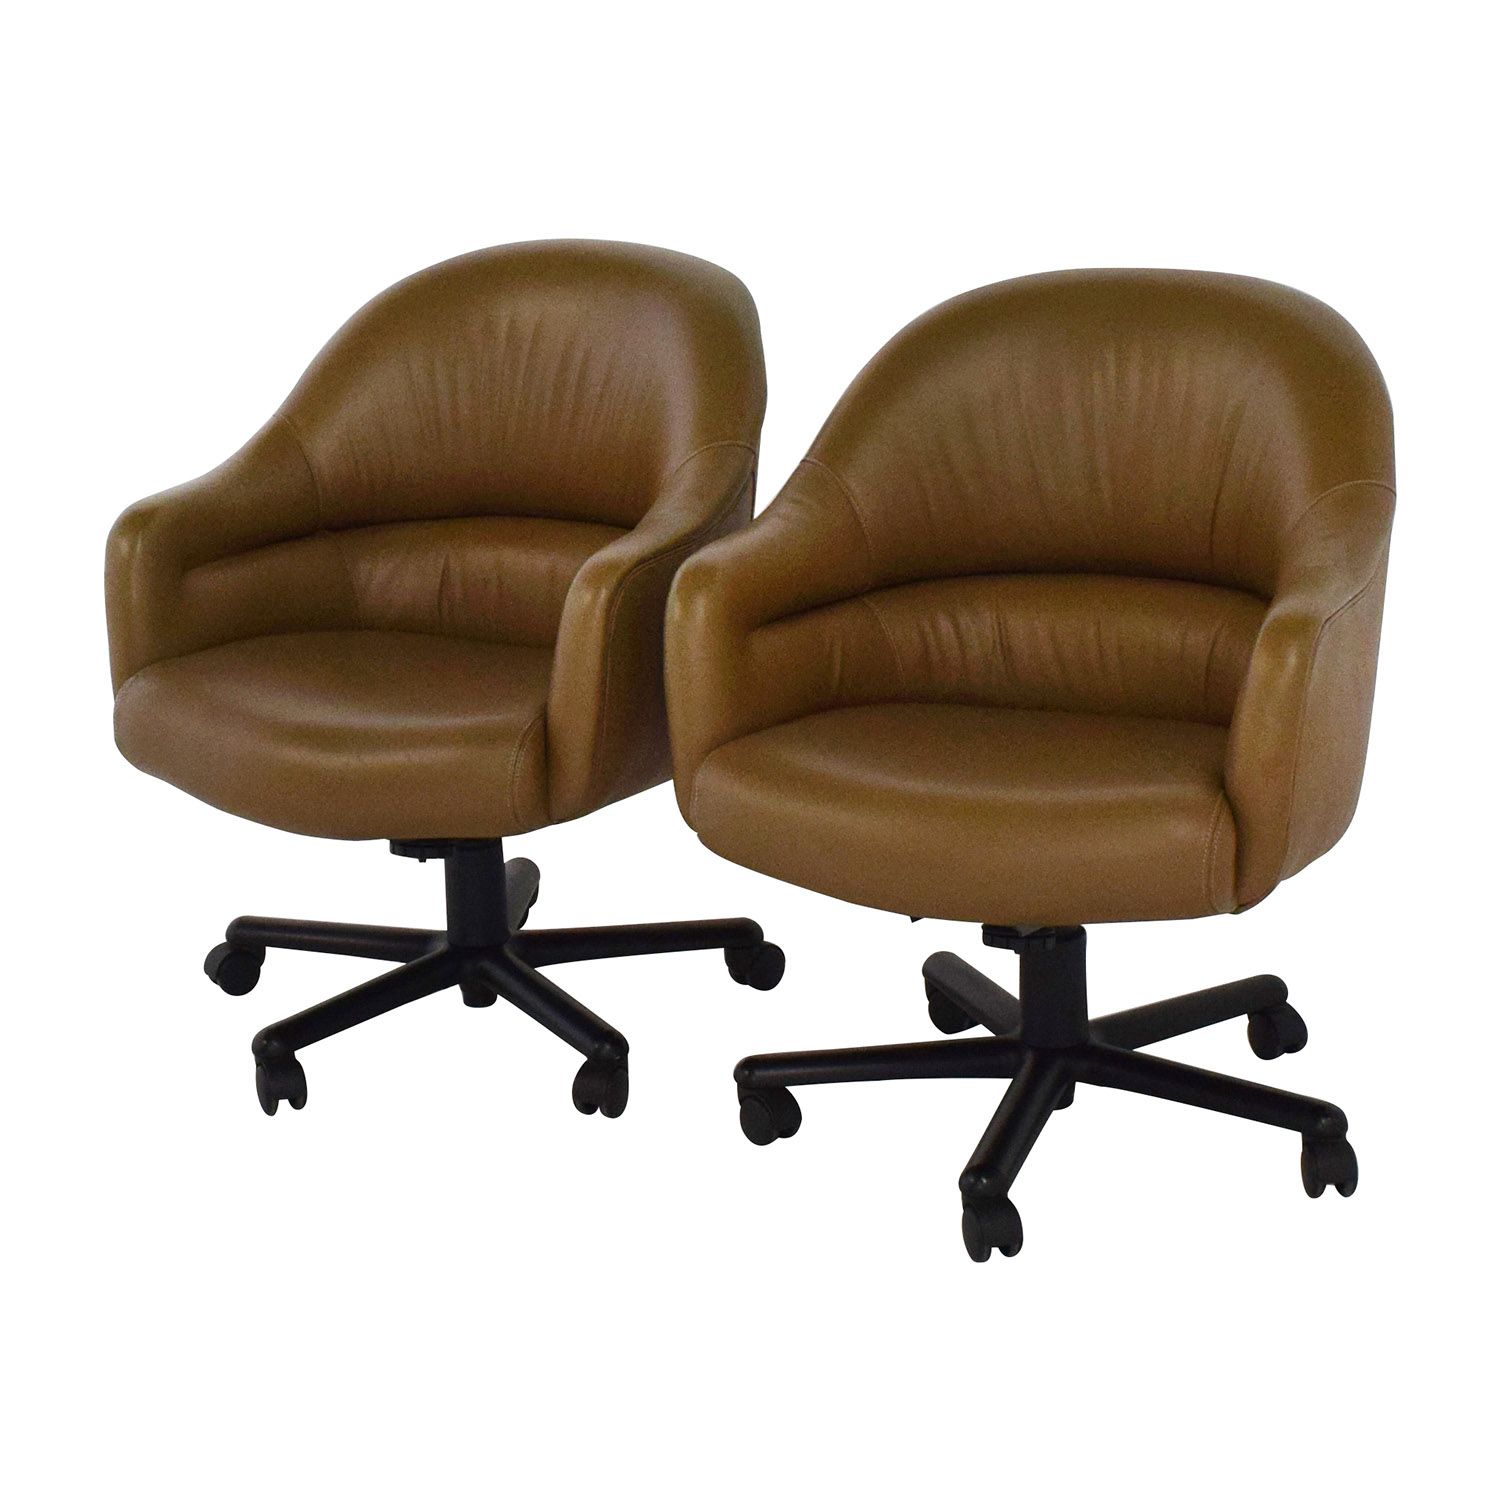 Brown Leather Office Chairs 90 Off Pair Of Brown Leather Office Chairs Chairs